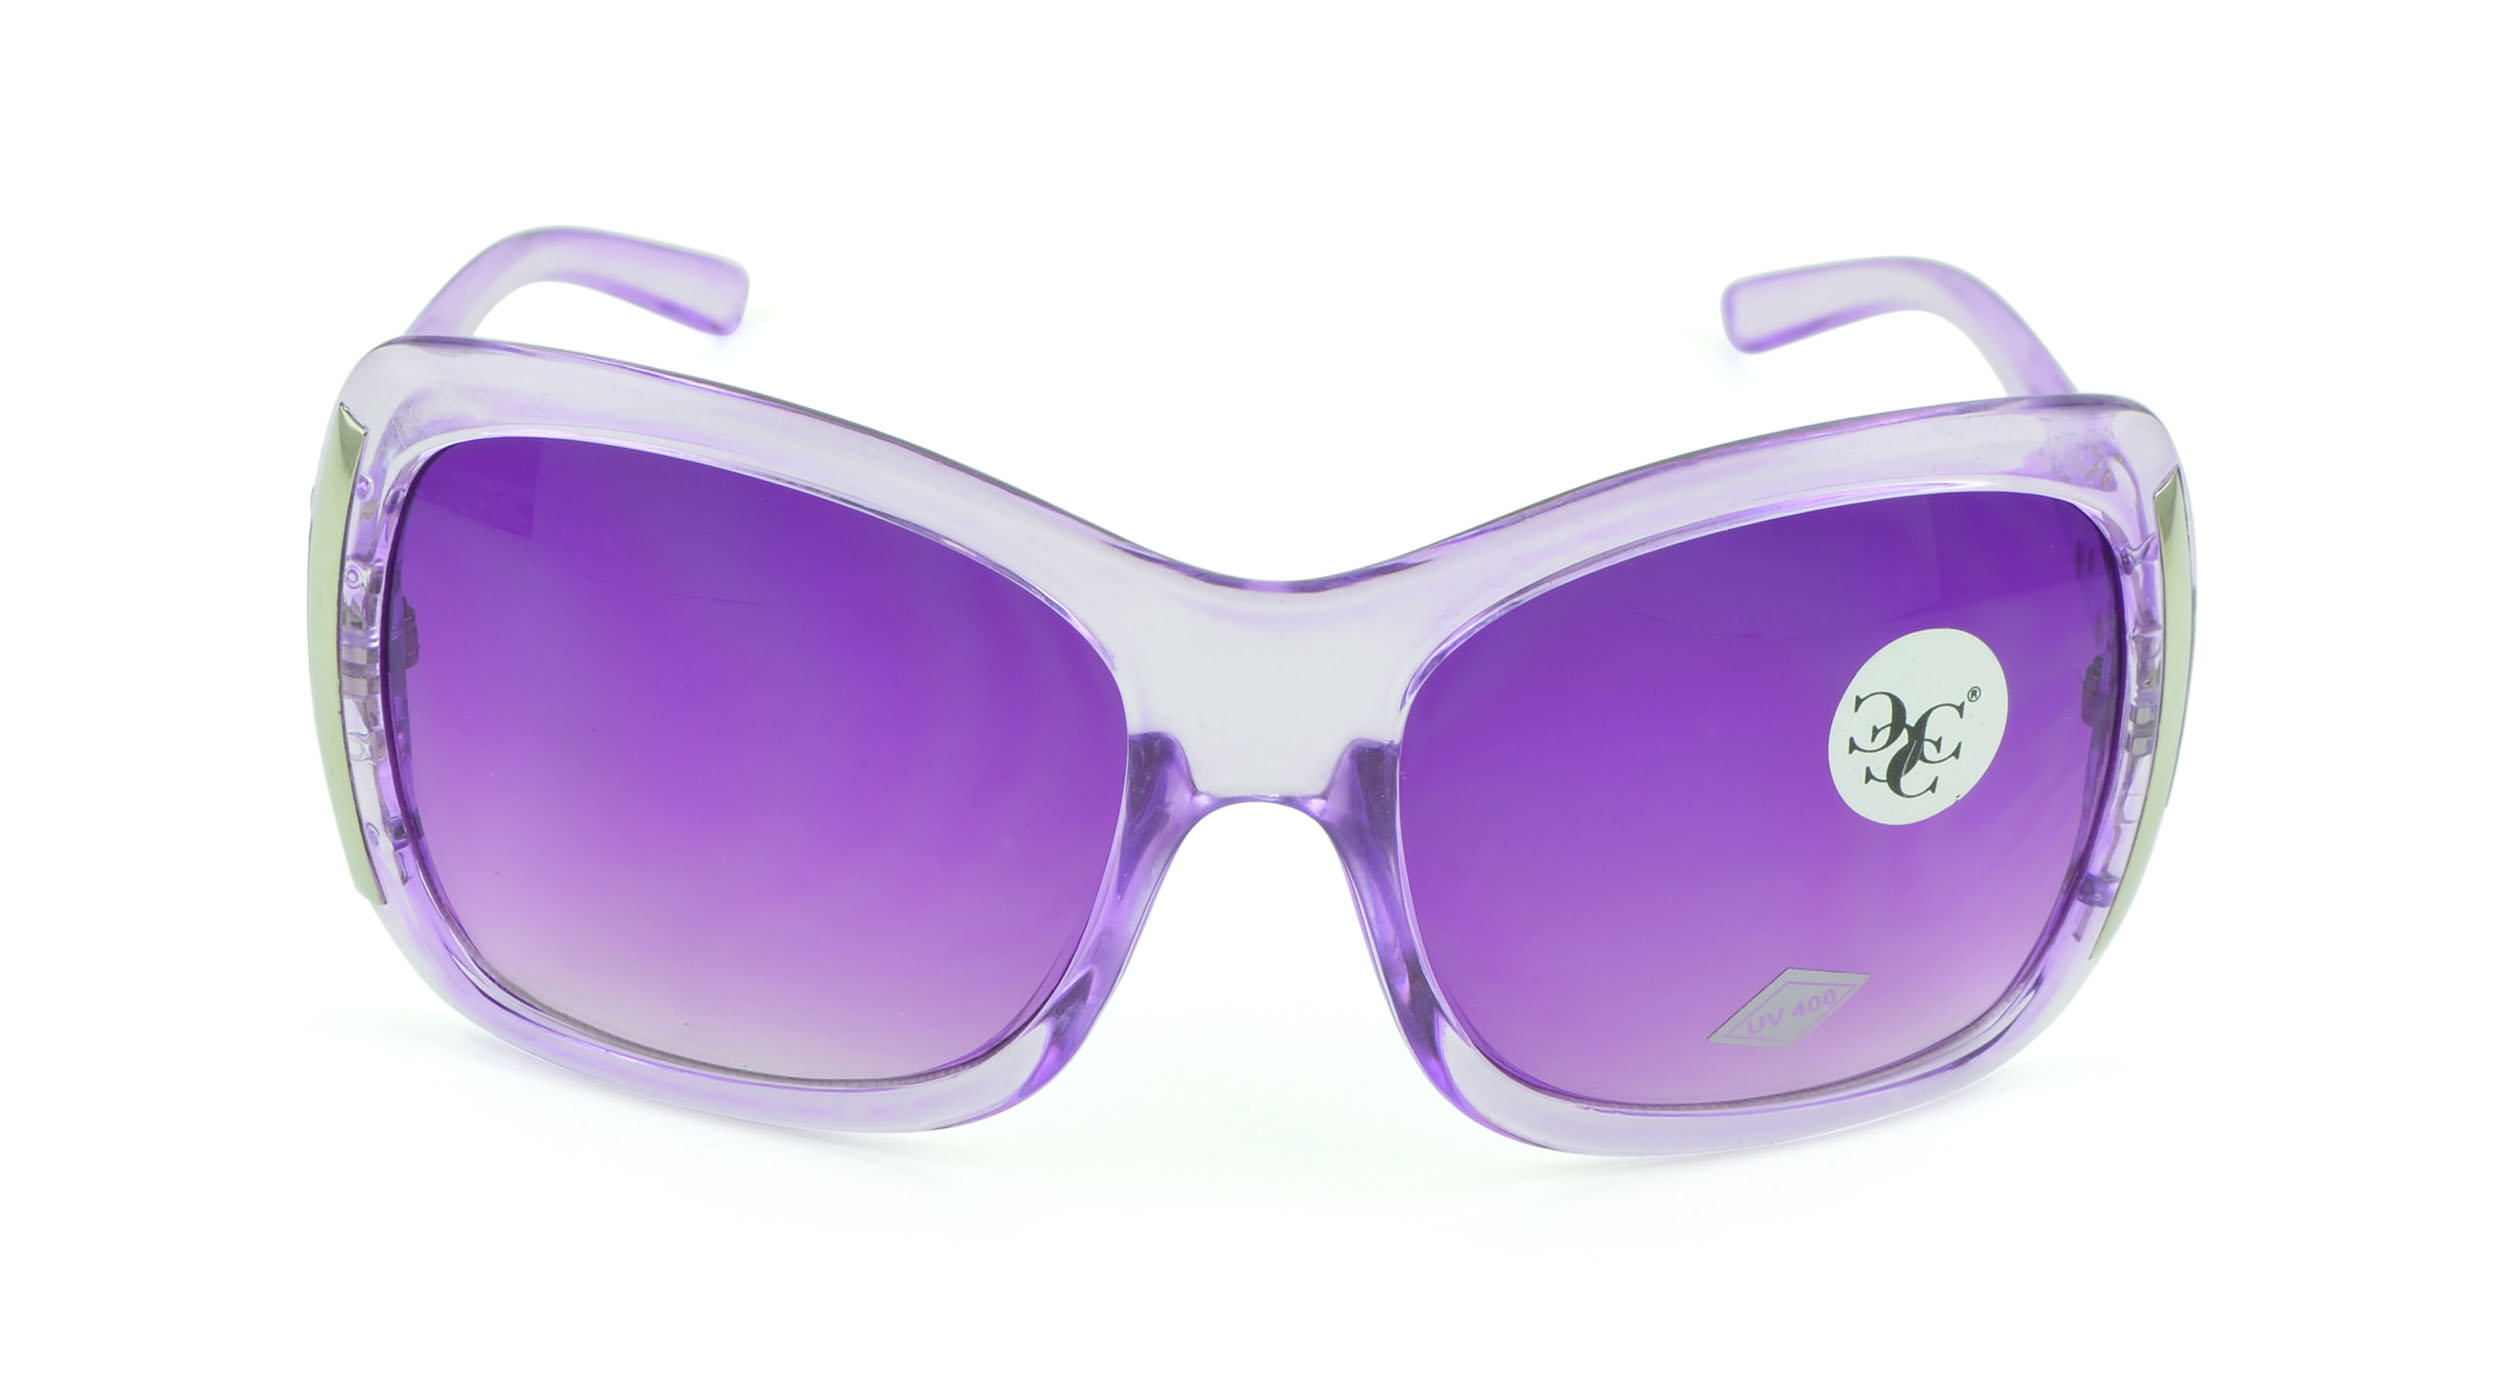 Belle Donne - Women's Unique and Stylish Fashion Sunglasses - Clear Studded Oversized Sunglasses for Women and Girls - Trendy Ladies Sunglasses - UV P